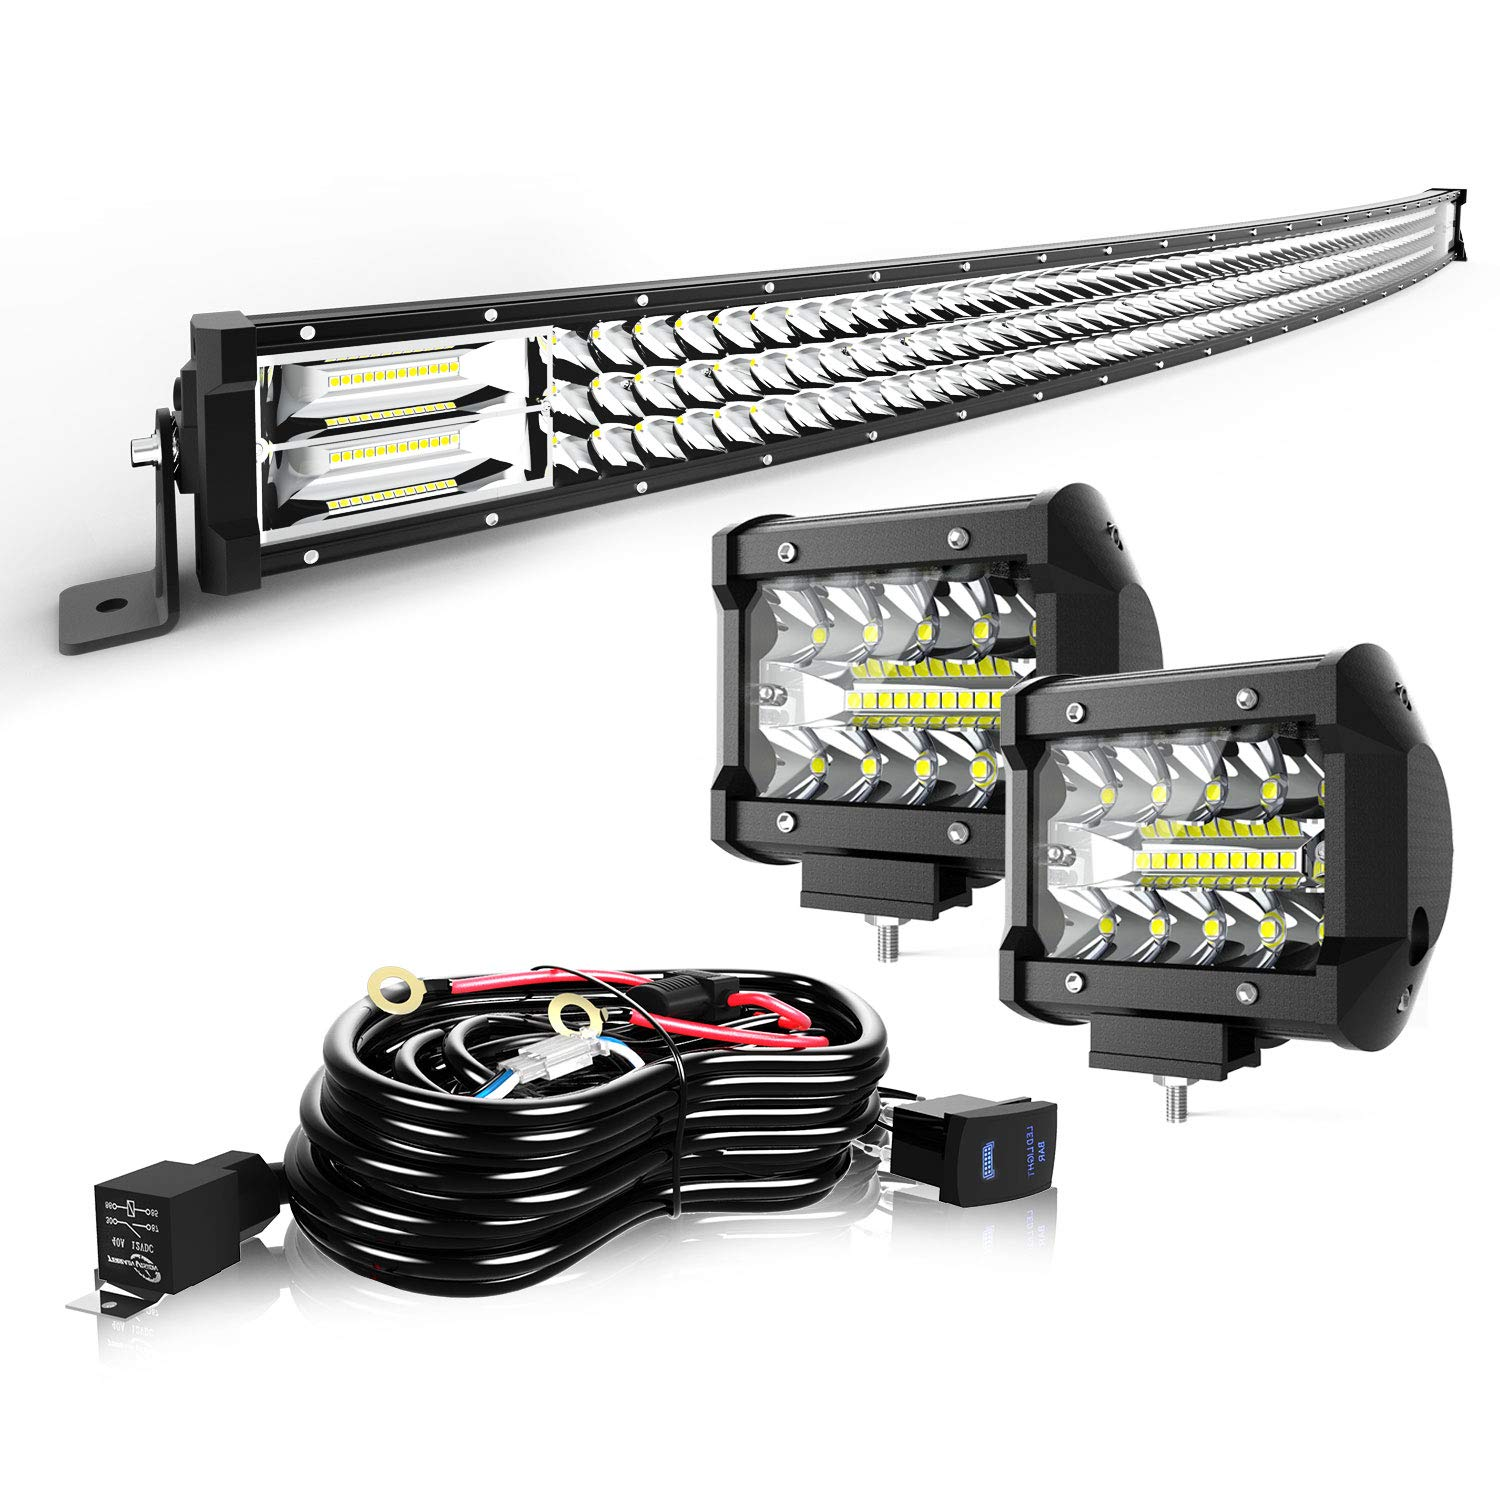 """TURBO SII 50"""" LED Light Bar Curved Triple Row 684W Flood Spot Combo Beam Led Bar W/ 2Pcs 4in Off Road Driving Fog Lights with Wiring Harness-3 Leads for Jeep Trucks Polaris ATV Boats Lighting"""